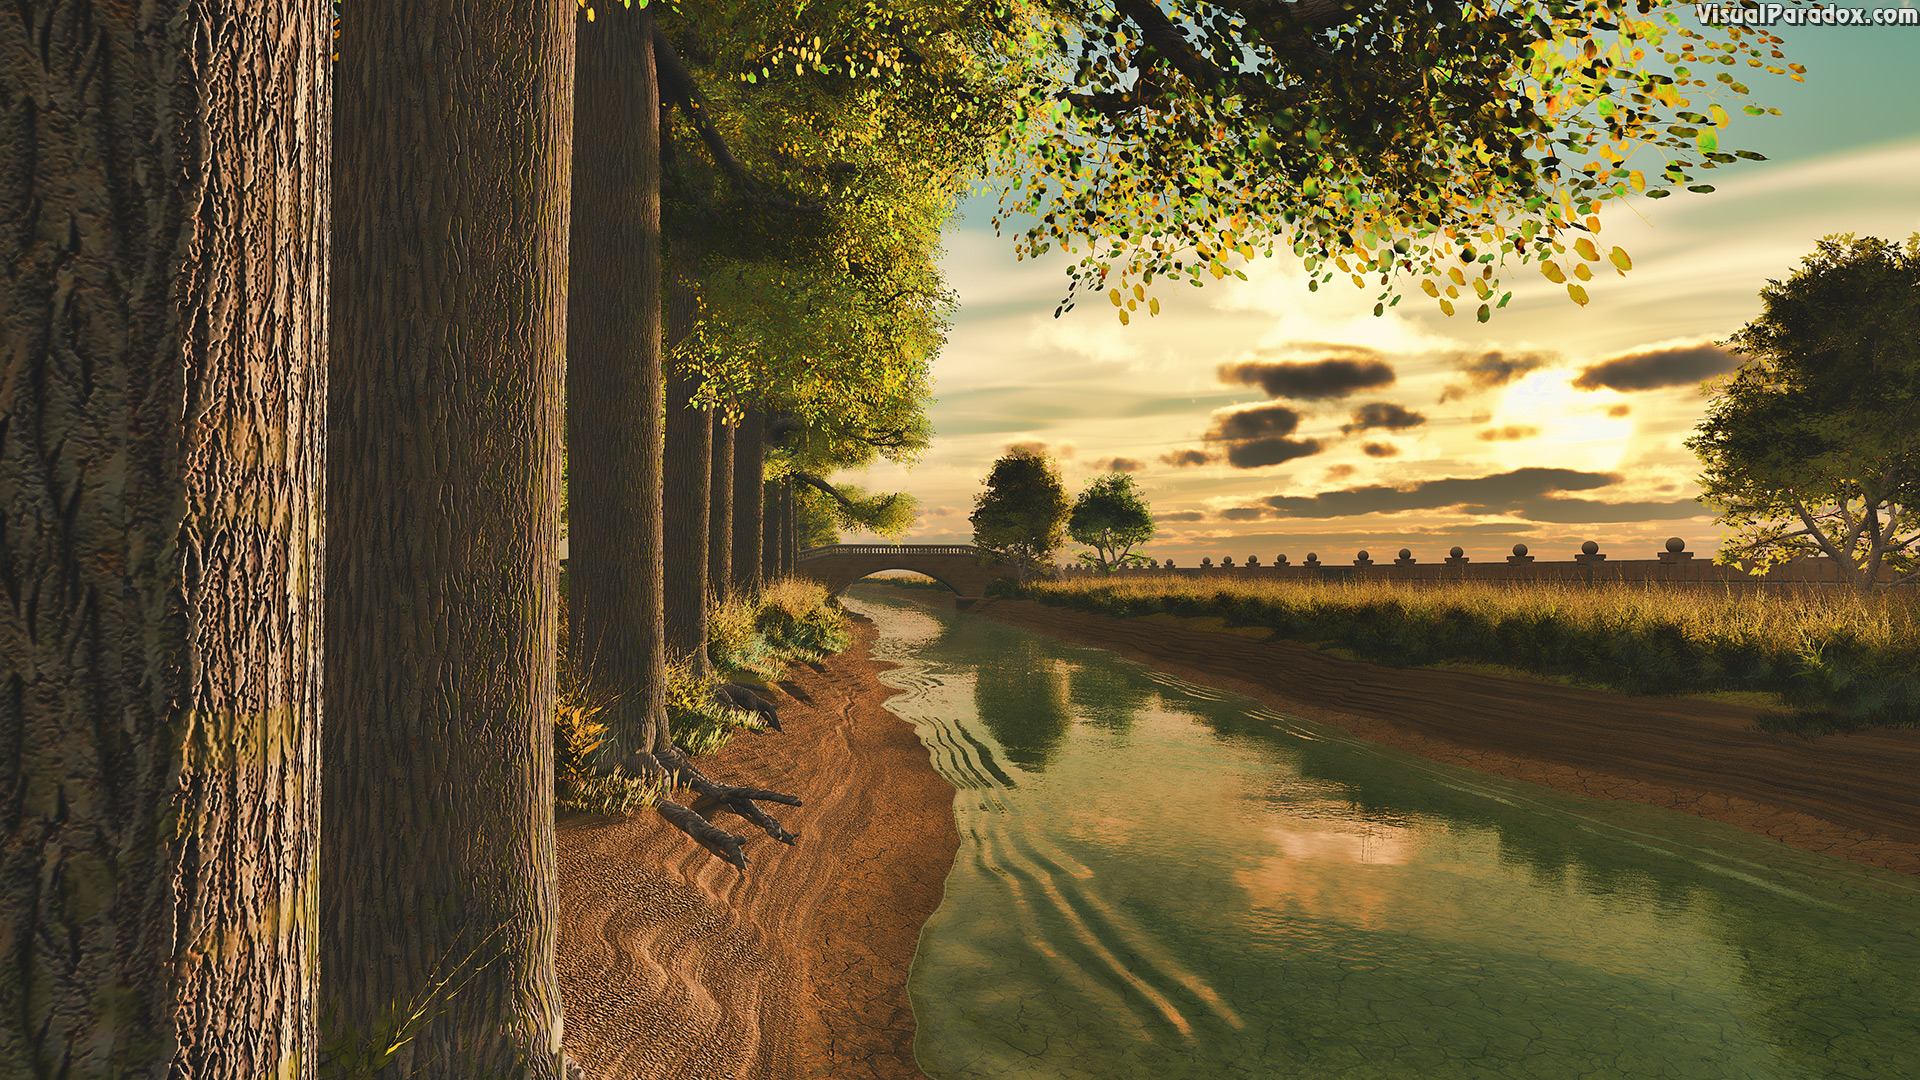 canal, stream, river, channel, creek, waterway, trees, tree-lined, cottonwood, sunset, sunrise, wall , 3d, wallpaper